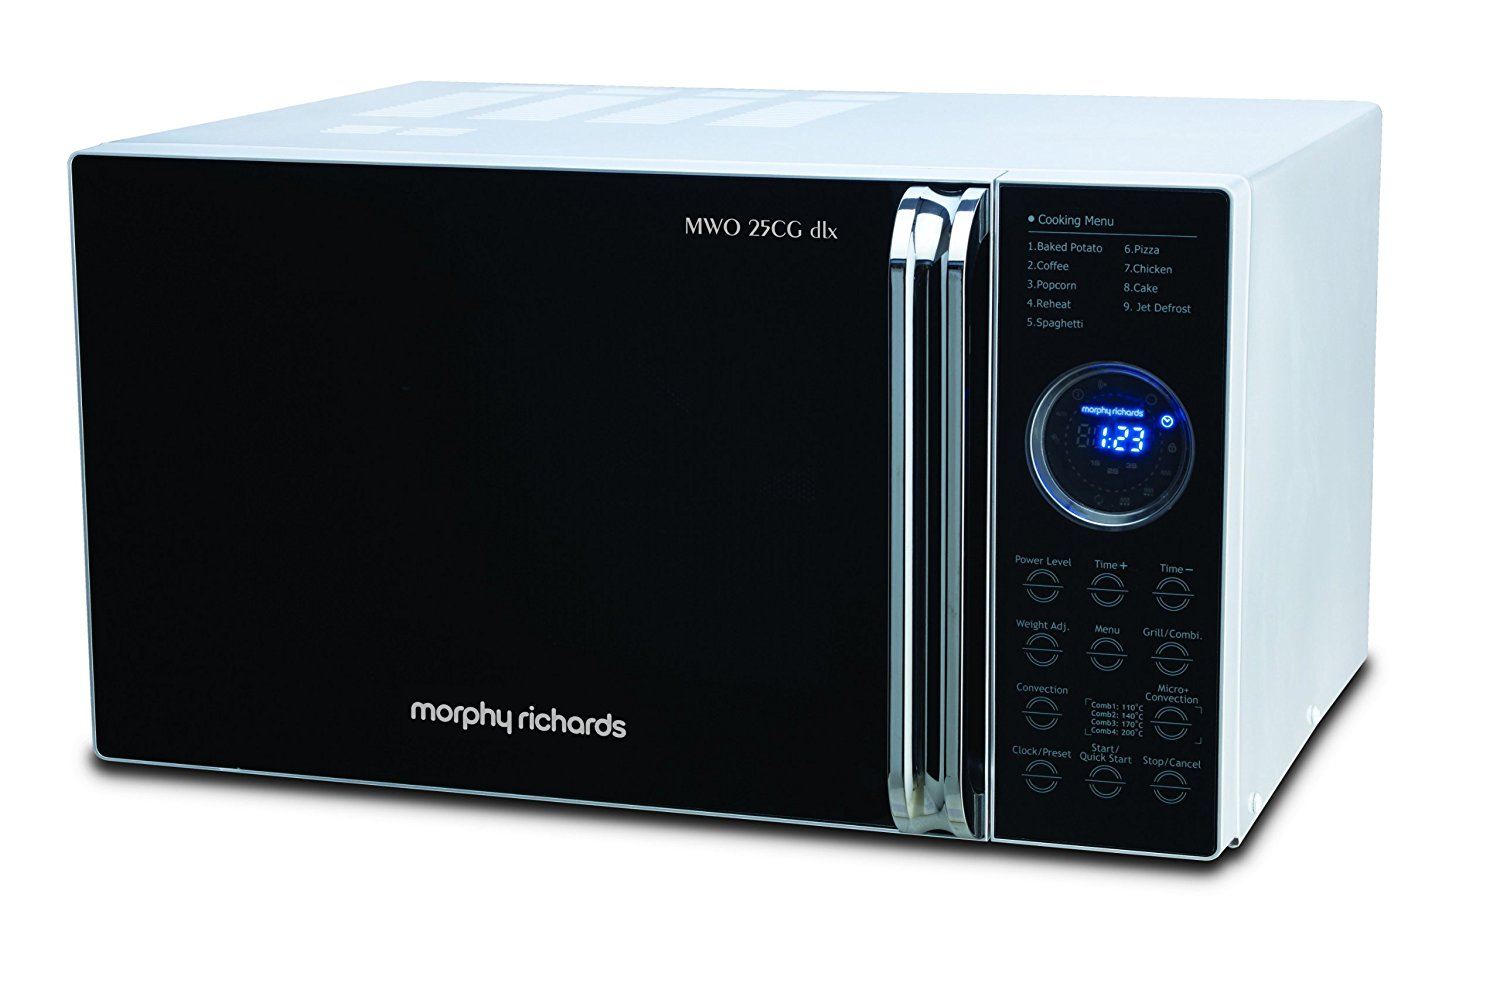 25 liters Morphy Richards microwave oven